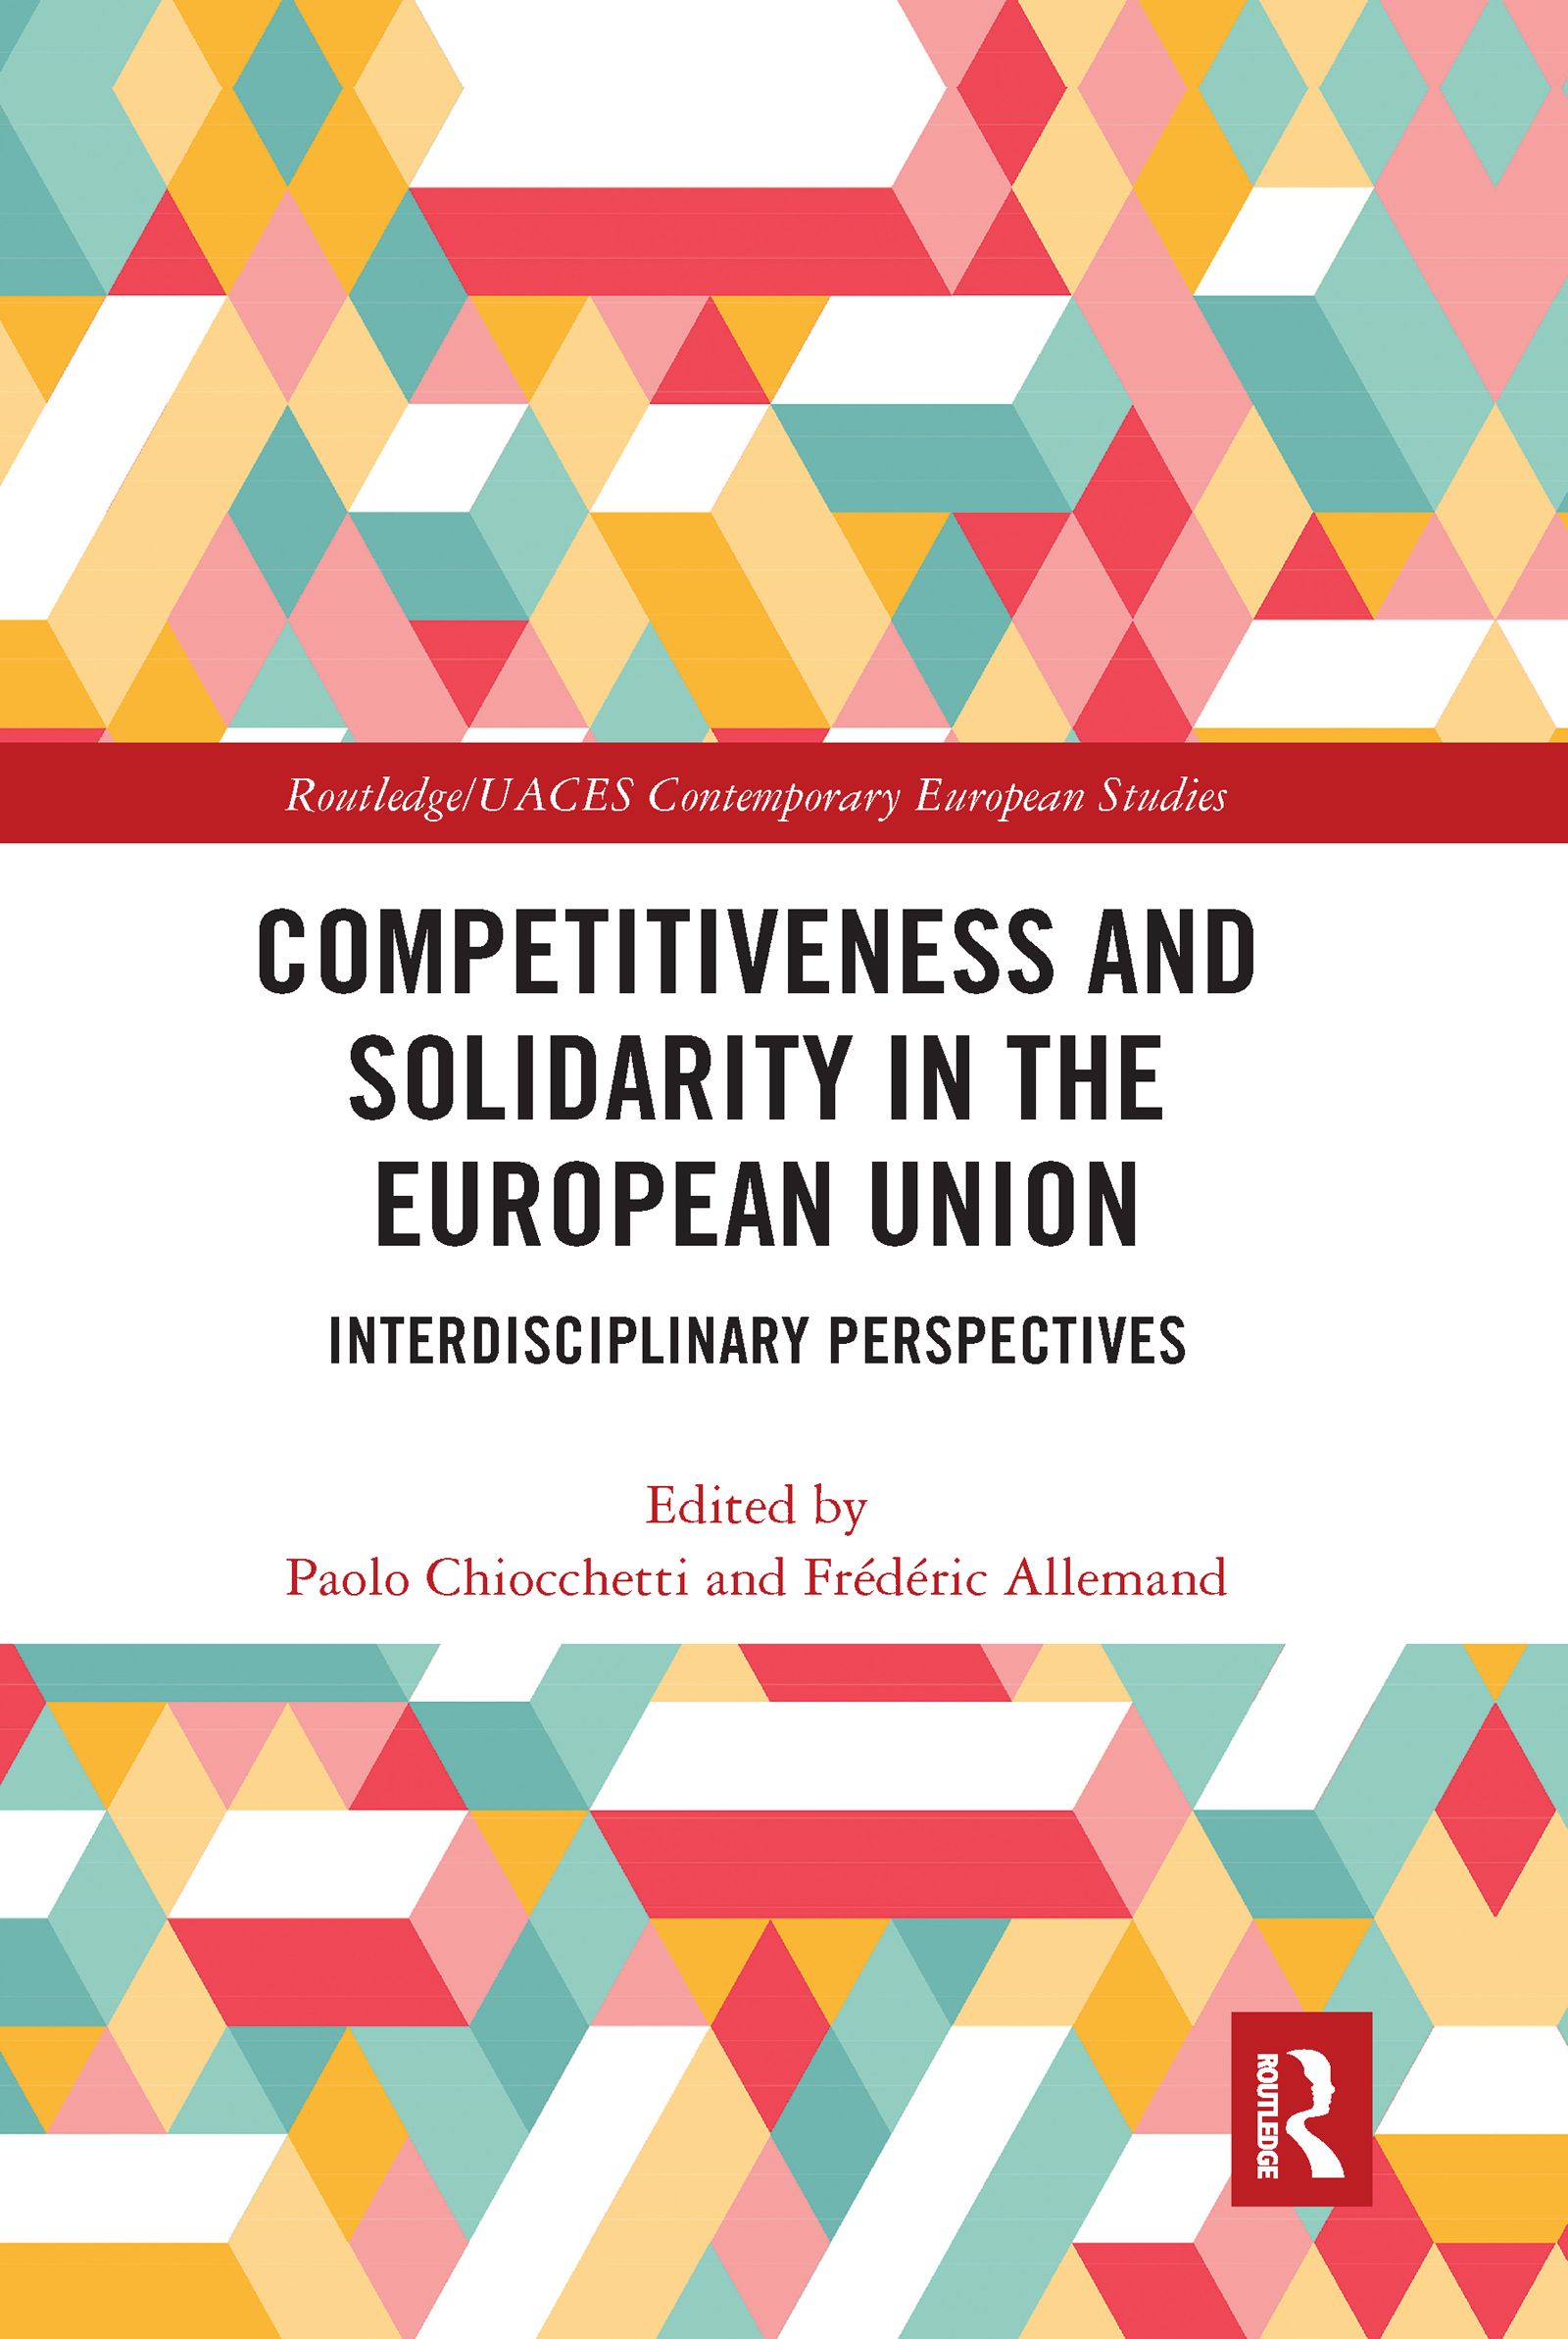 Competitiveness and Solidarity in the European Union